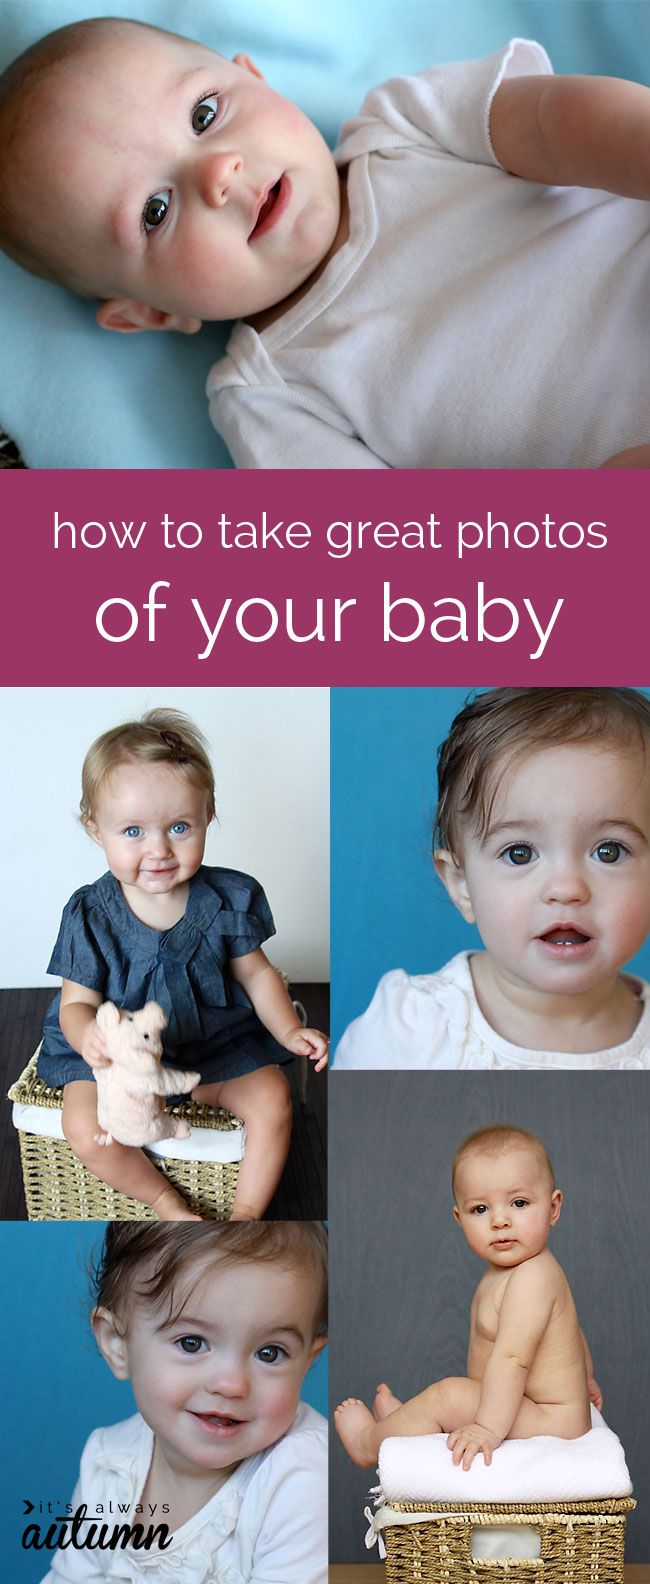 great tips to help you get gorgeous photos of your baby - without spending tons of money at a photo studio! DIY baby photoshoot ideas